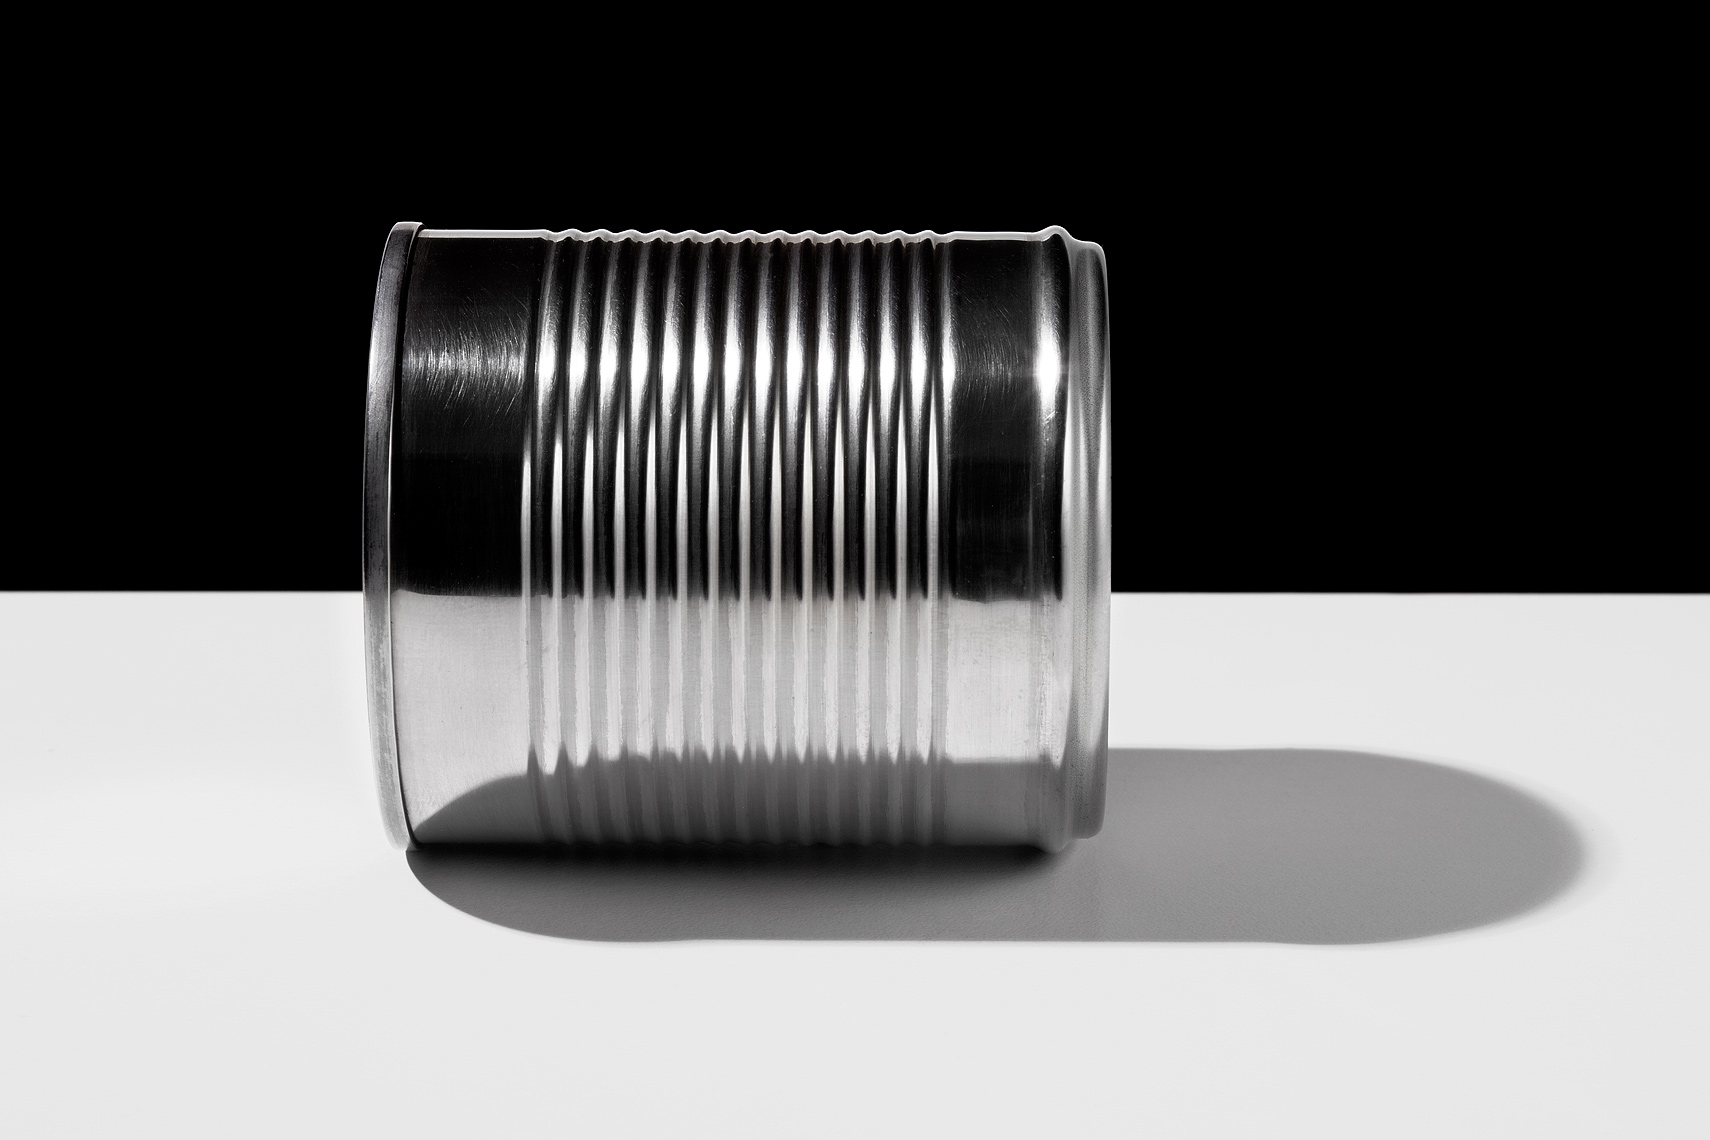 Aluminum can on table side view by John Kuczala